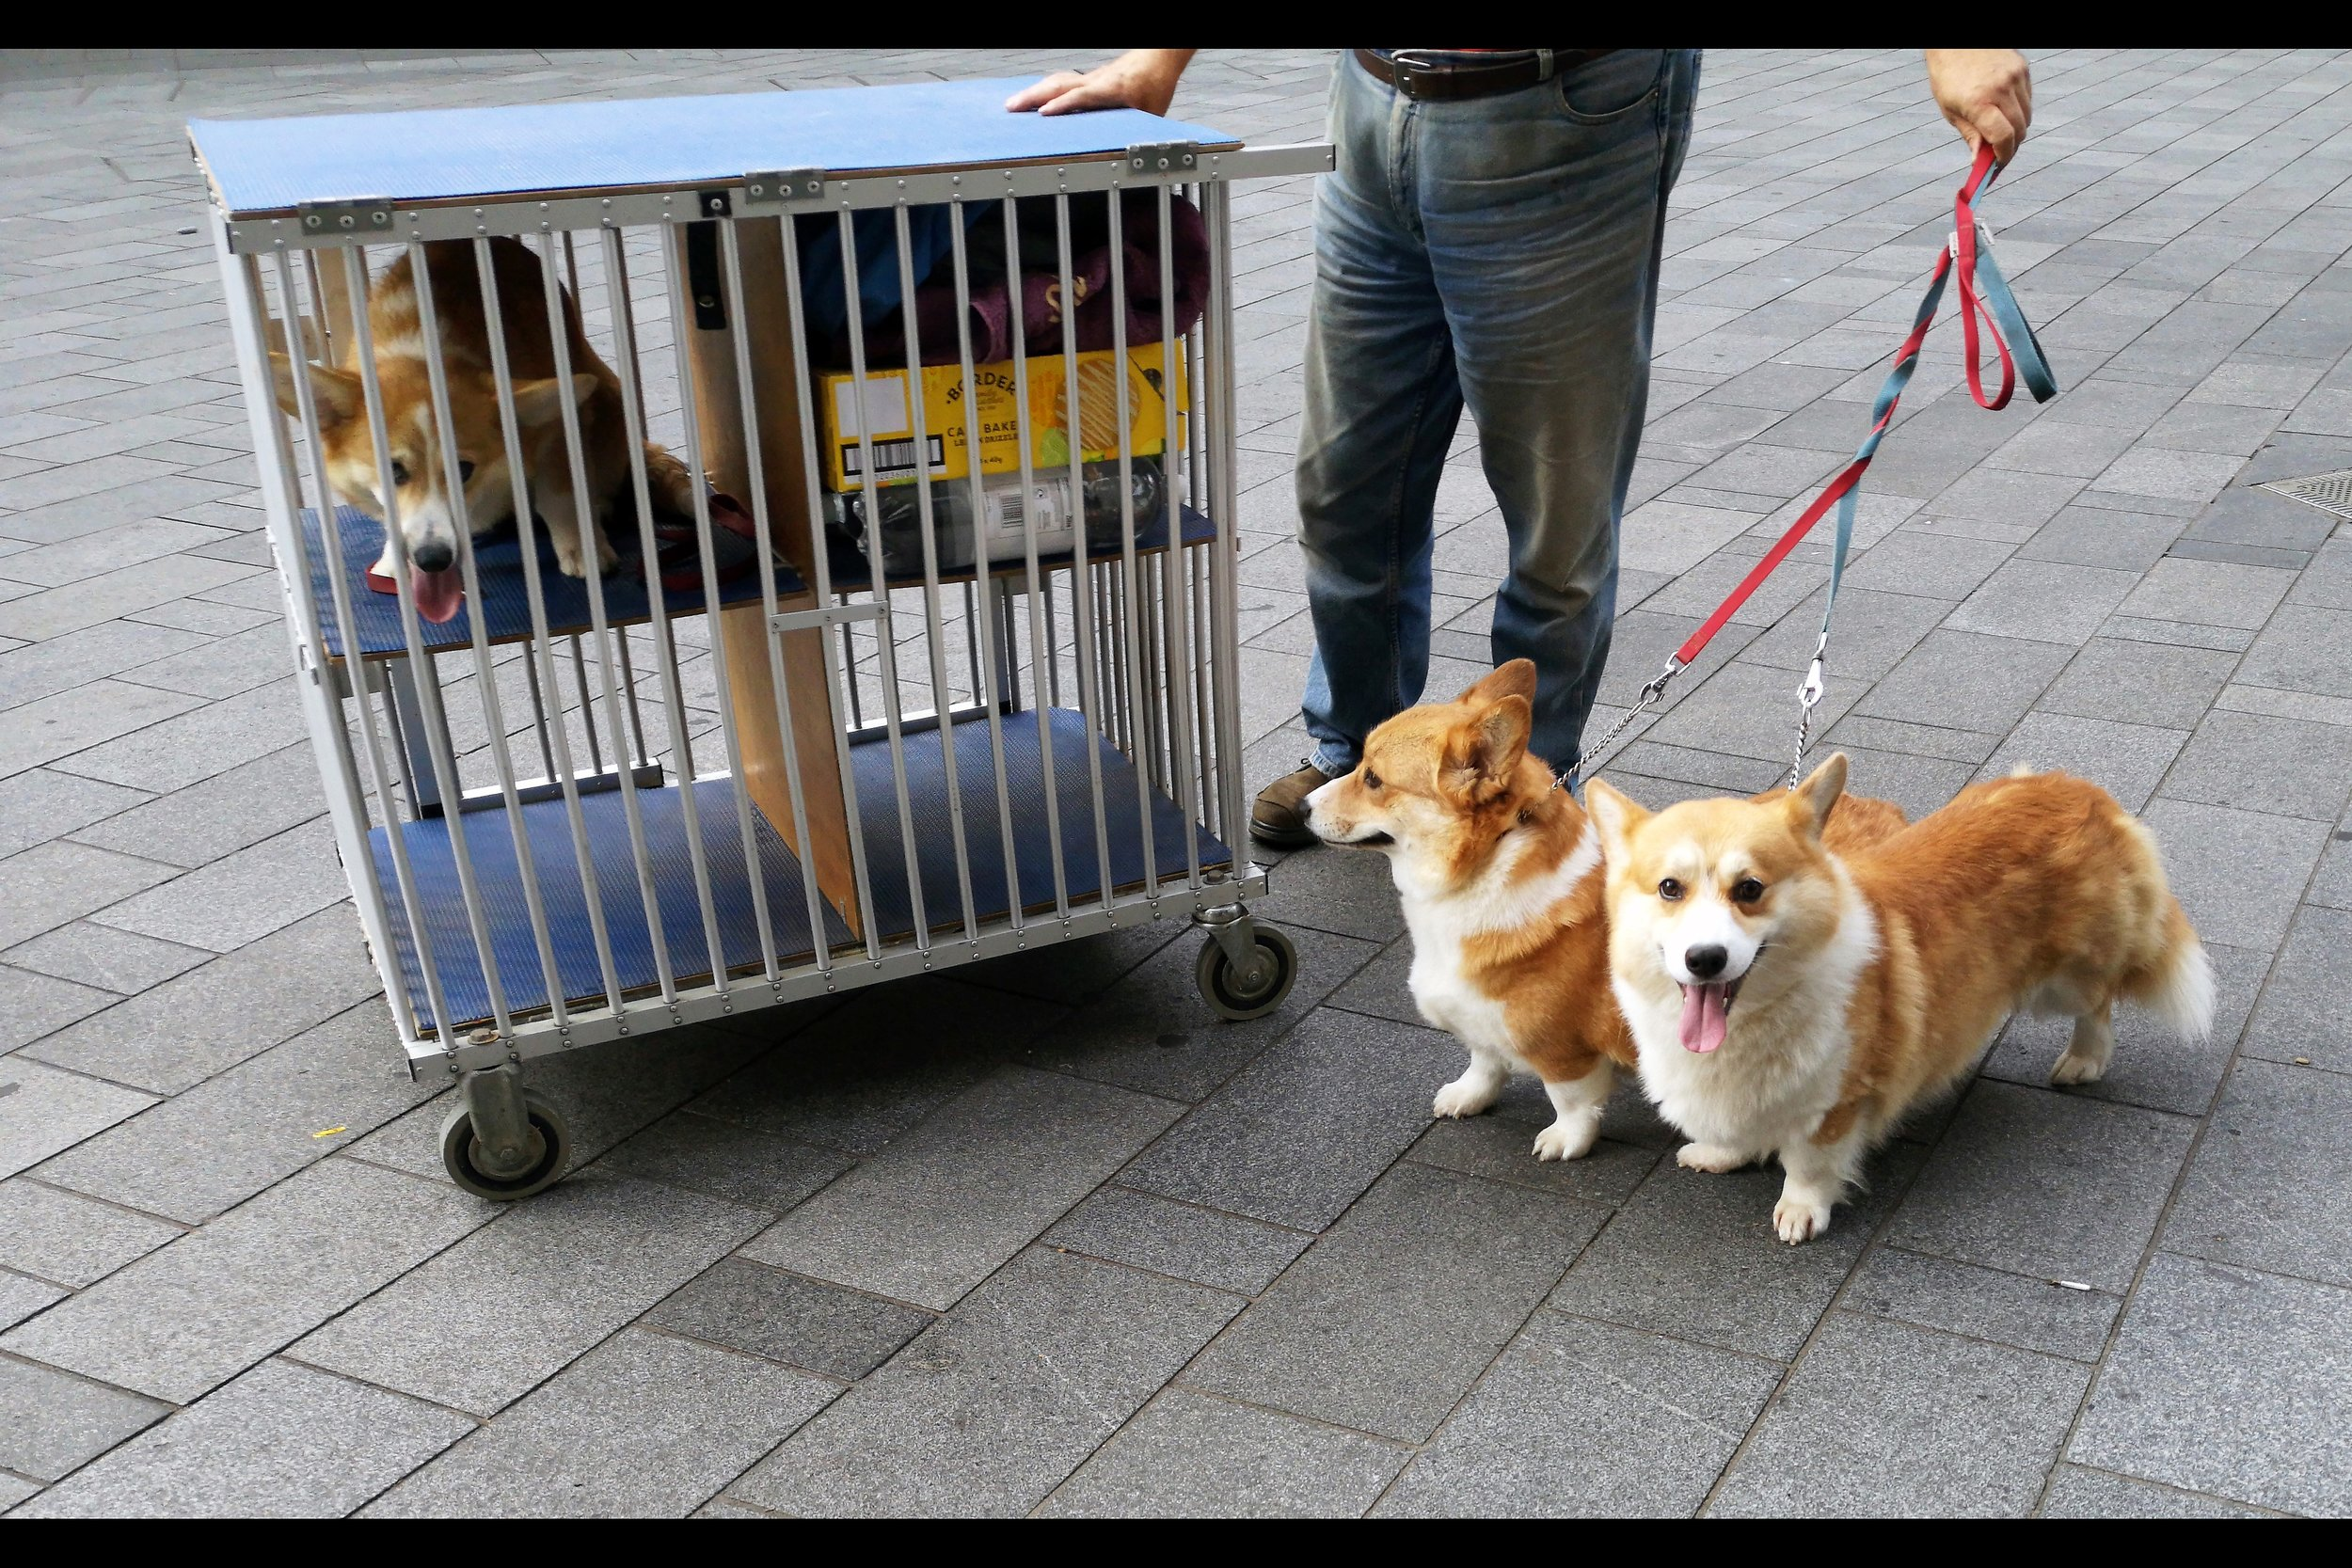 It occurs to me now that perhaps these corgis might have been motion captured for the animated characters shown on-screen in the movie - they certainly aren't physically in it. But I have to assume if you really truly cared, and needed a corgi motion captured for a CG-movie, you'd call Andy Serkis to do it.